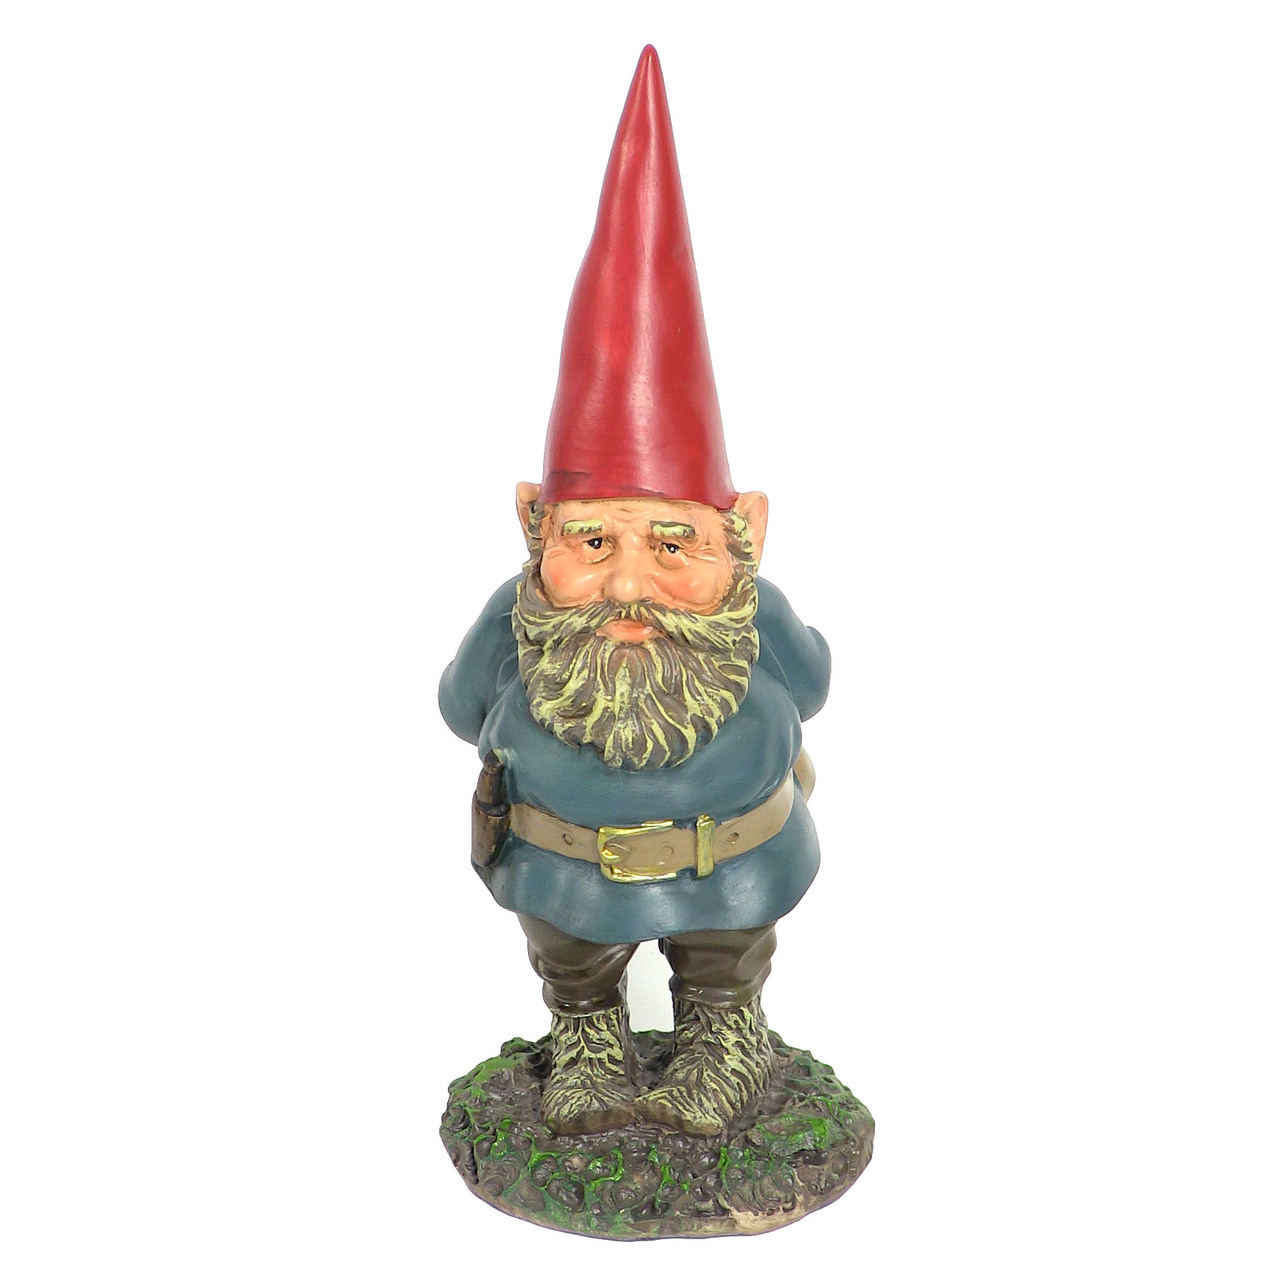 Gus the Original Gnome